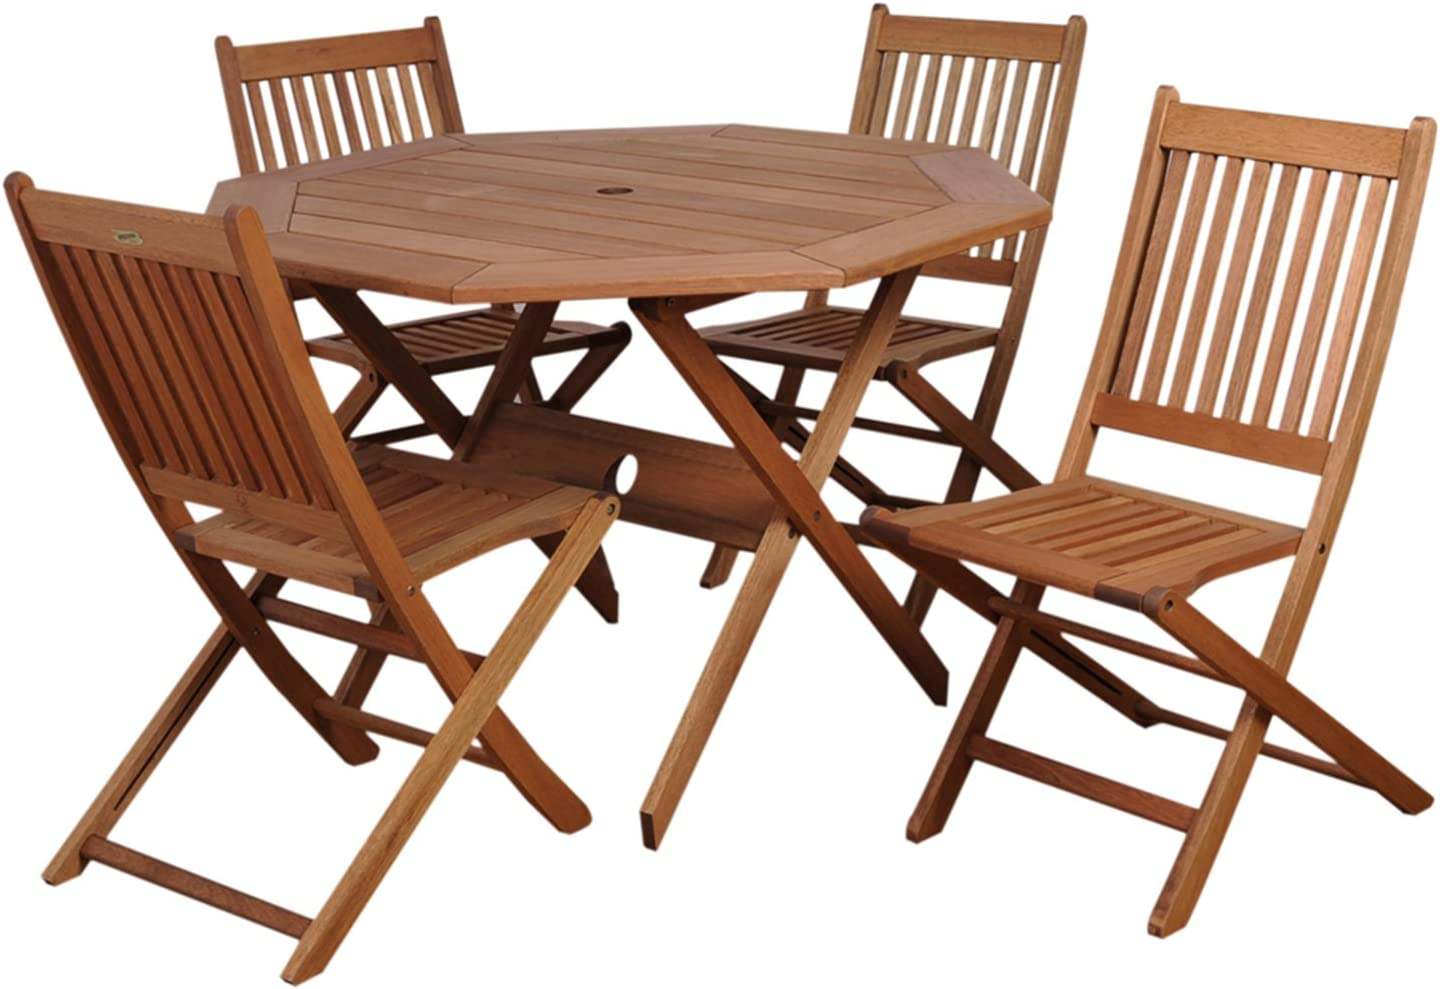 Amazon Com Amazonia Chaise 5 Piece Patio Octagon Dining Table Set Eucalyptus Wood Ideal For Outdoors And Indoors 47lx43wx36h Light Brown Garden Outdoor